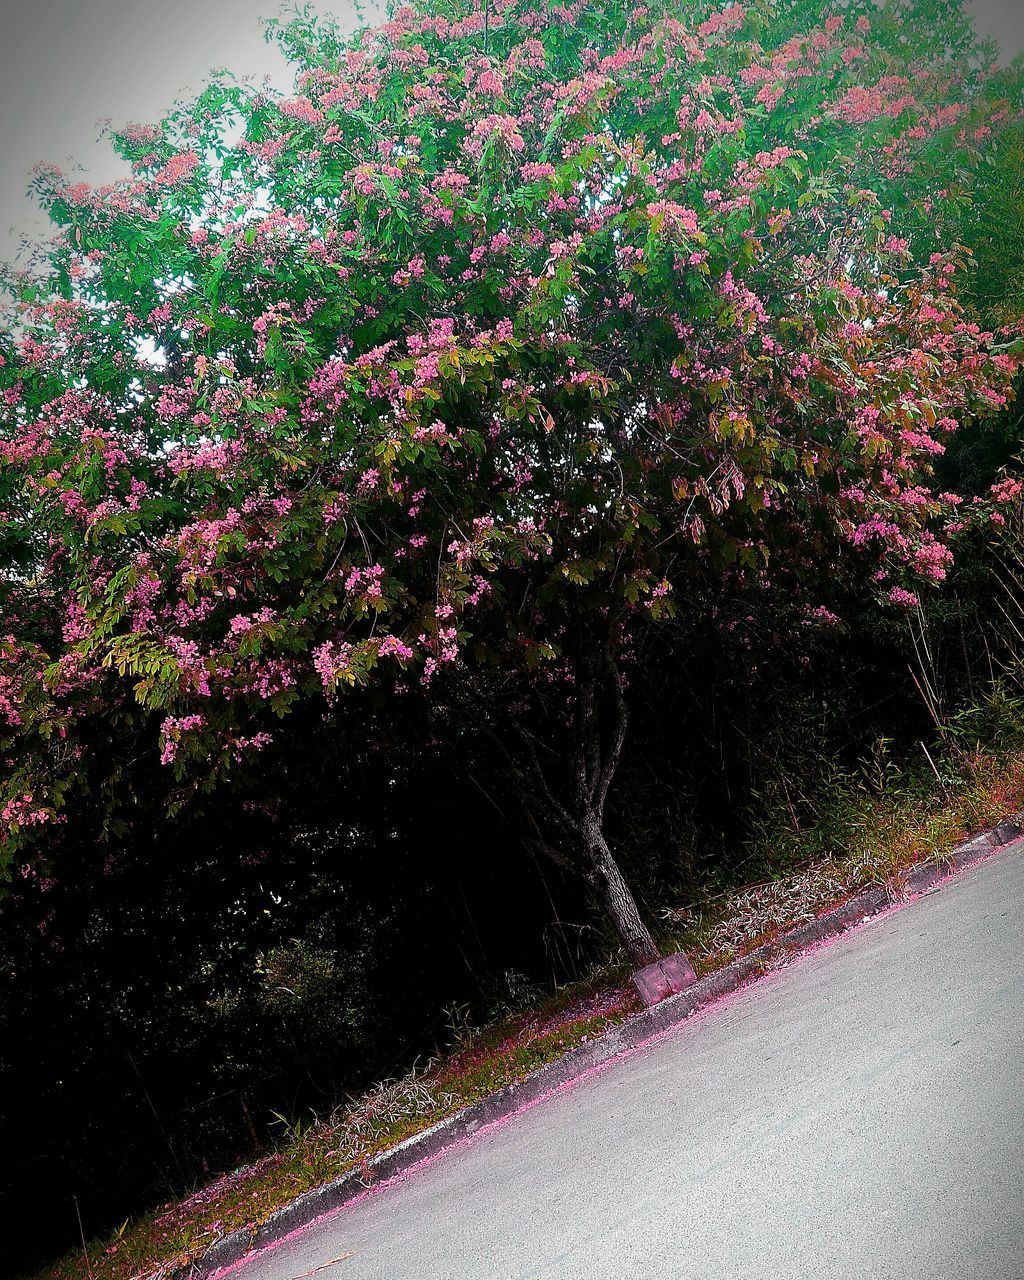 road, growth, pink color, purple, nature, no people, tree, flower, outdoors, day, beauty in nature